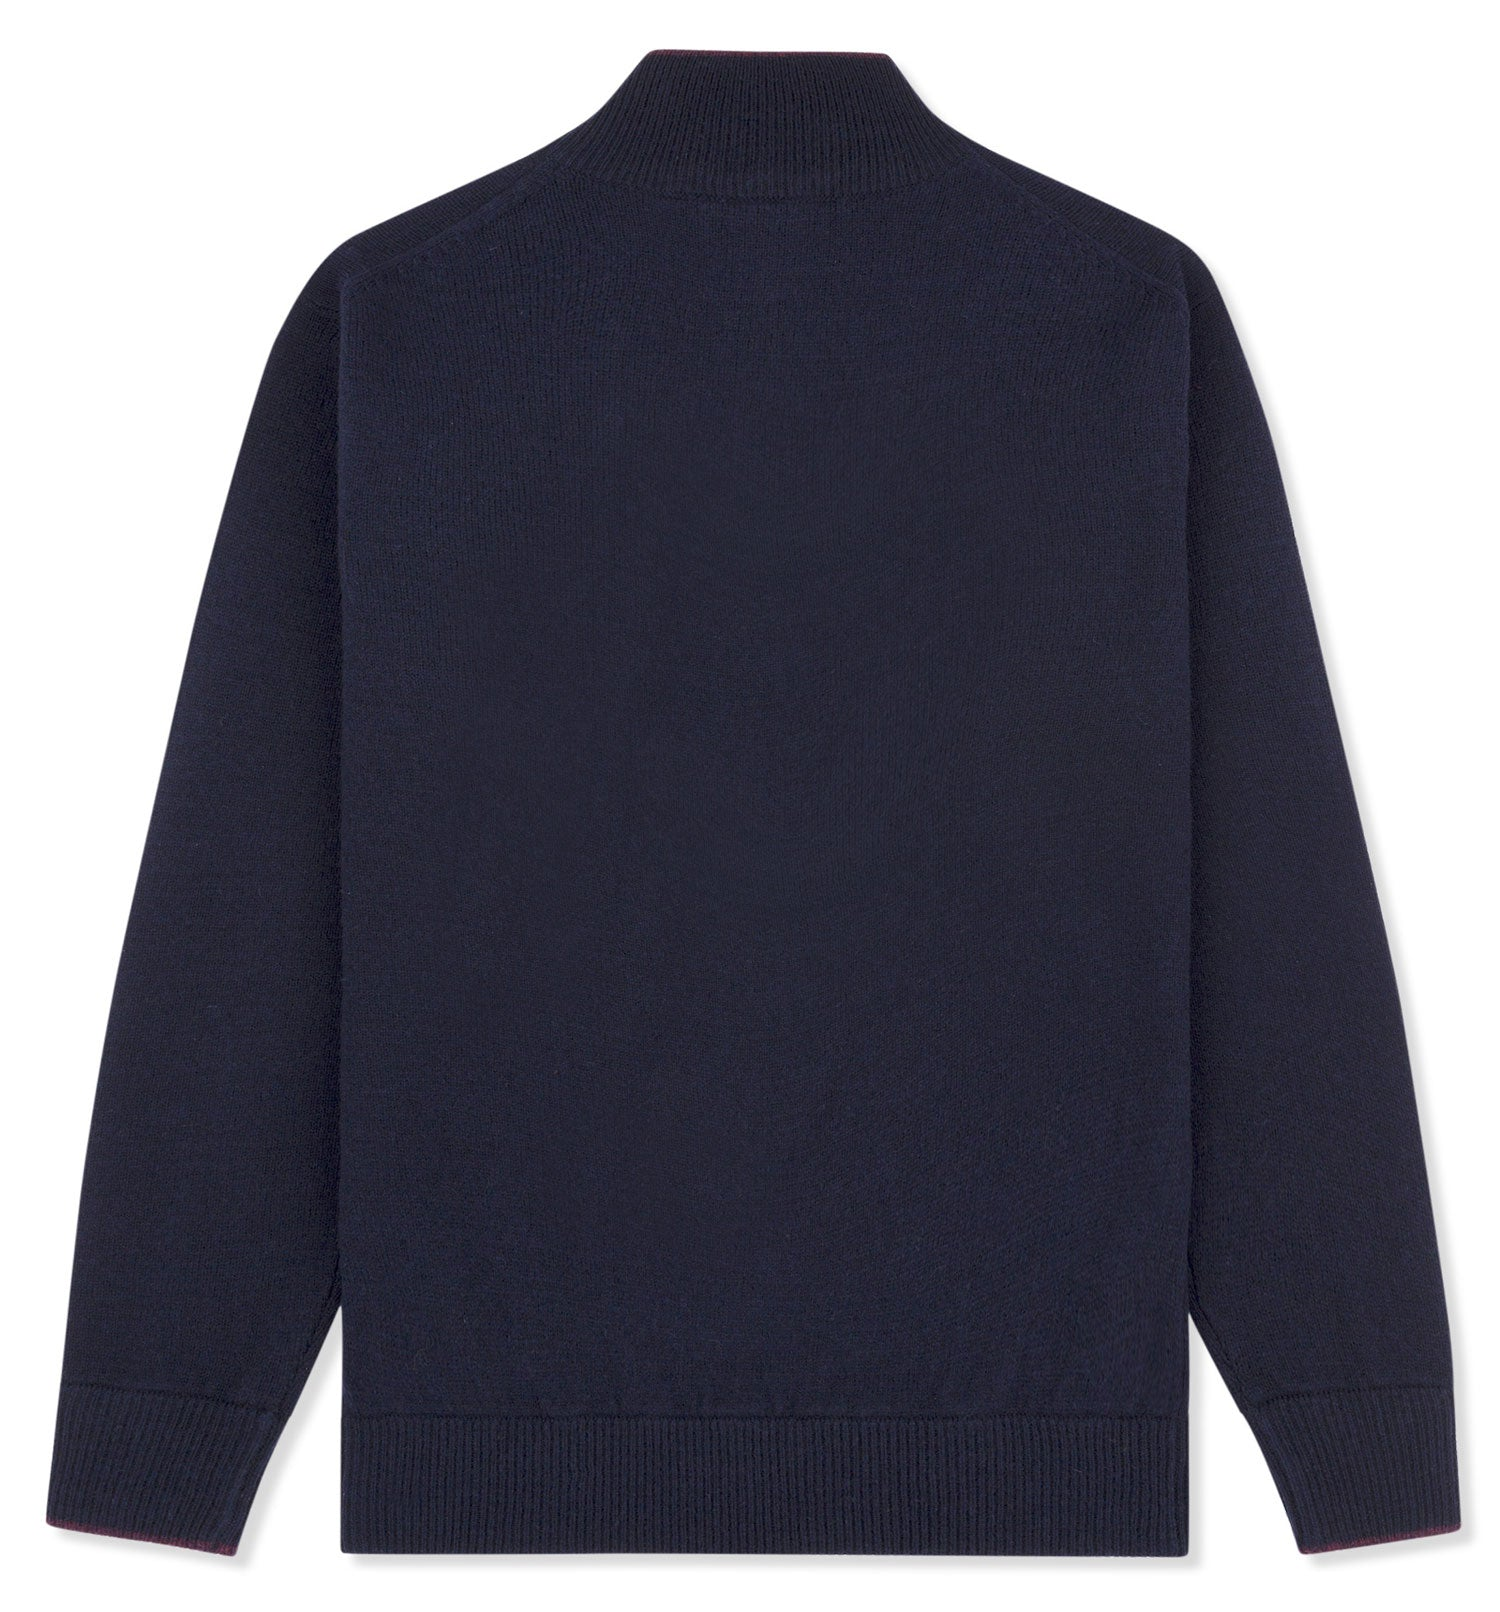 Back view Musto Knit Zip Neck Pullover